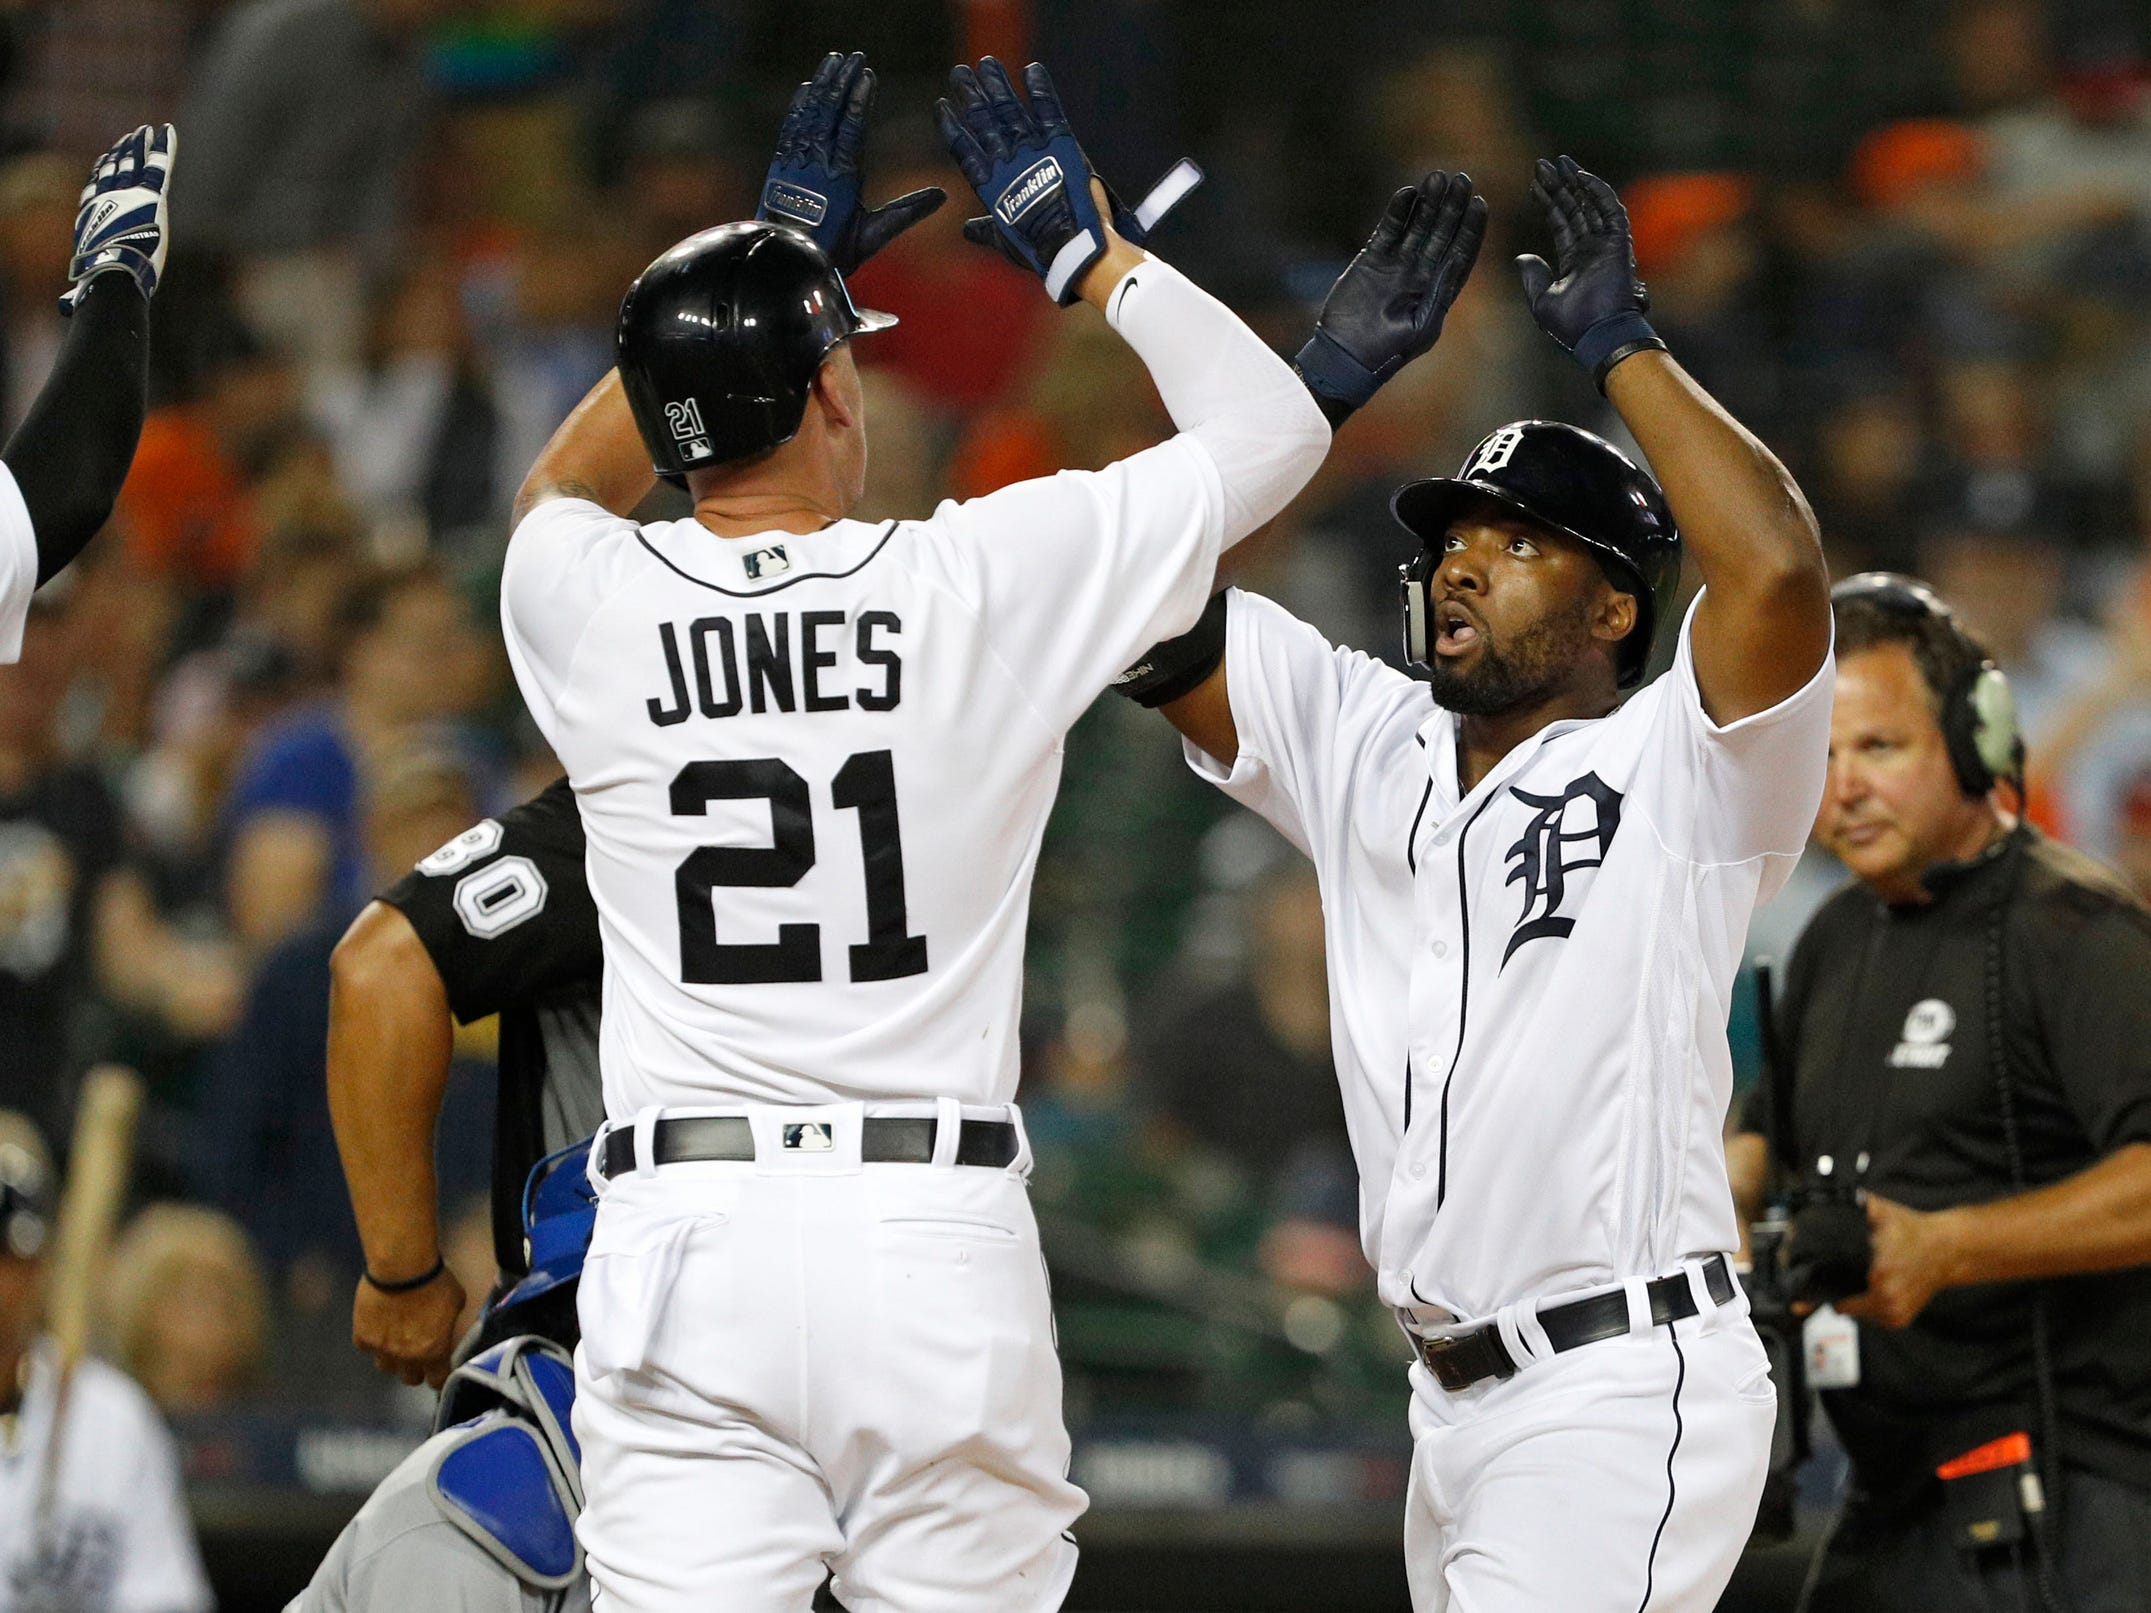 Detroit Tigers left fielder Christin Stewart, right, celebrates with left fielder JaCoby Jones after hitting a three-run home run during the second inning against the Kansas City Royals at Comerica Park on Thursday, Sept. 20, 2018, in Detroit.